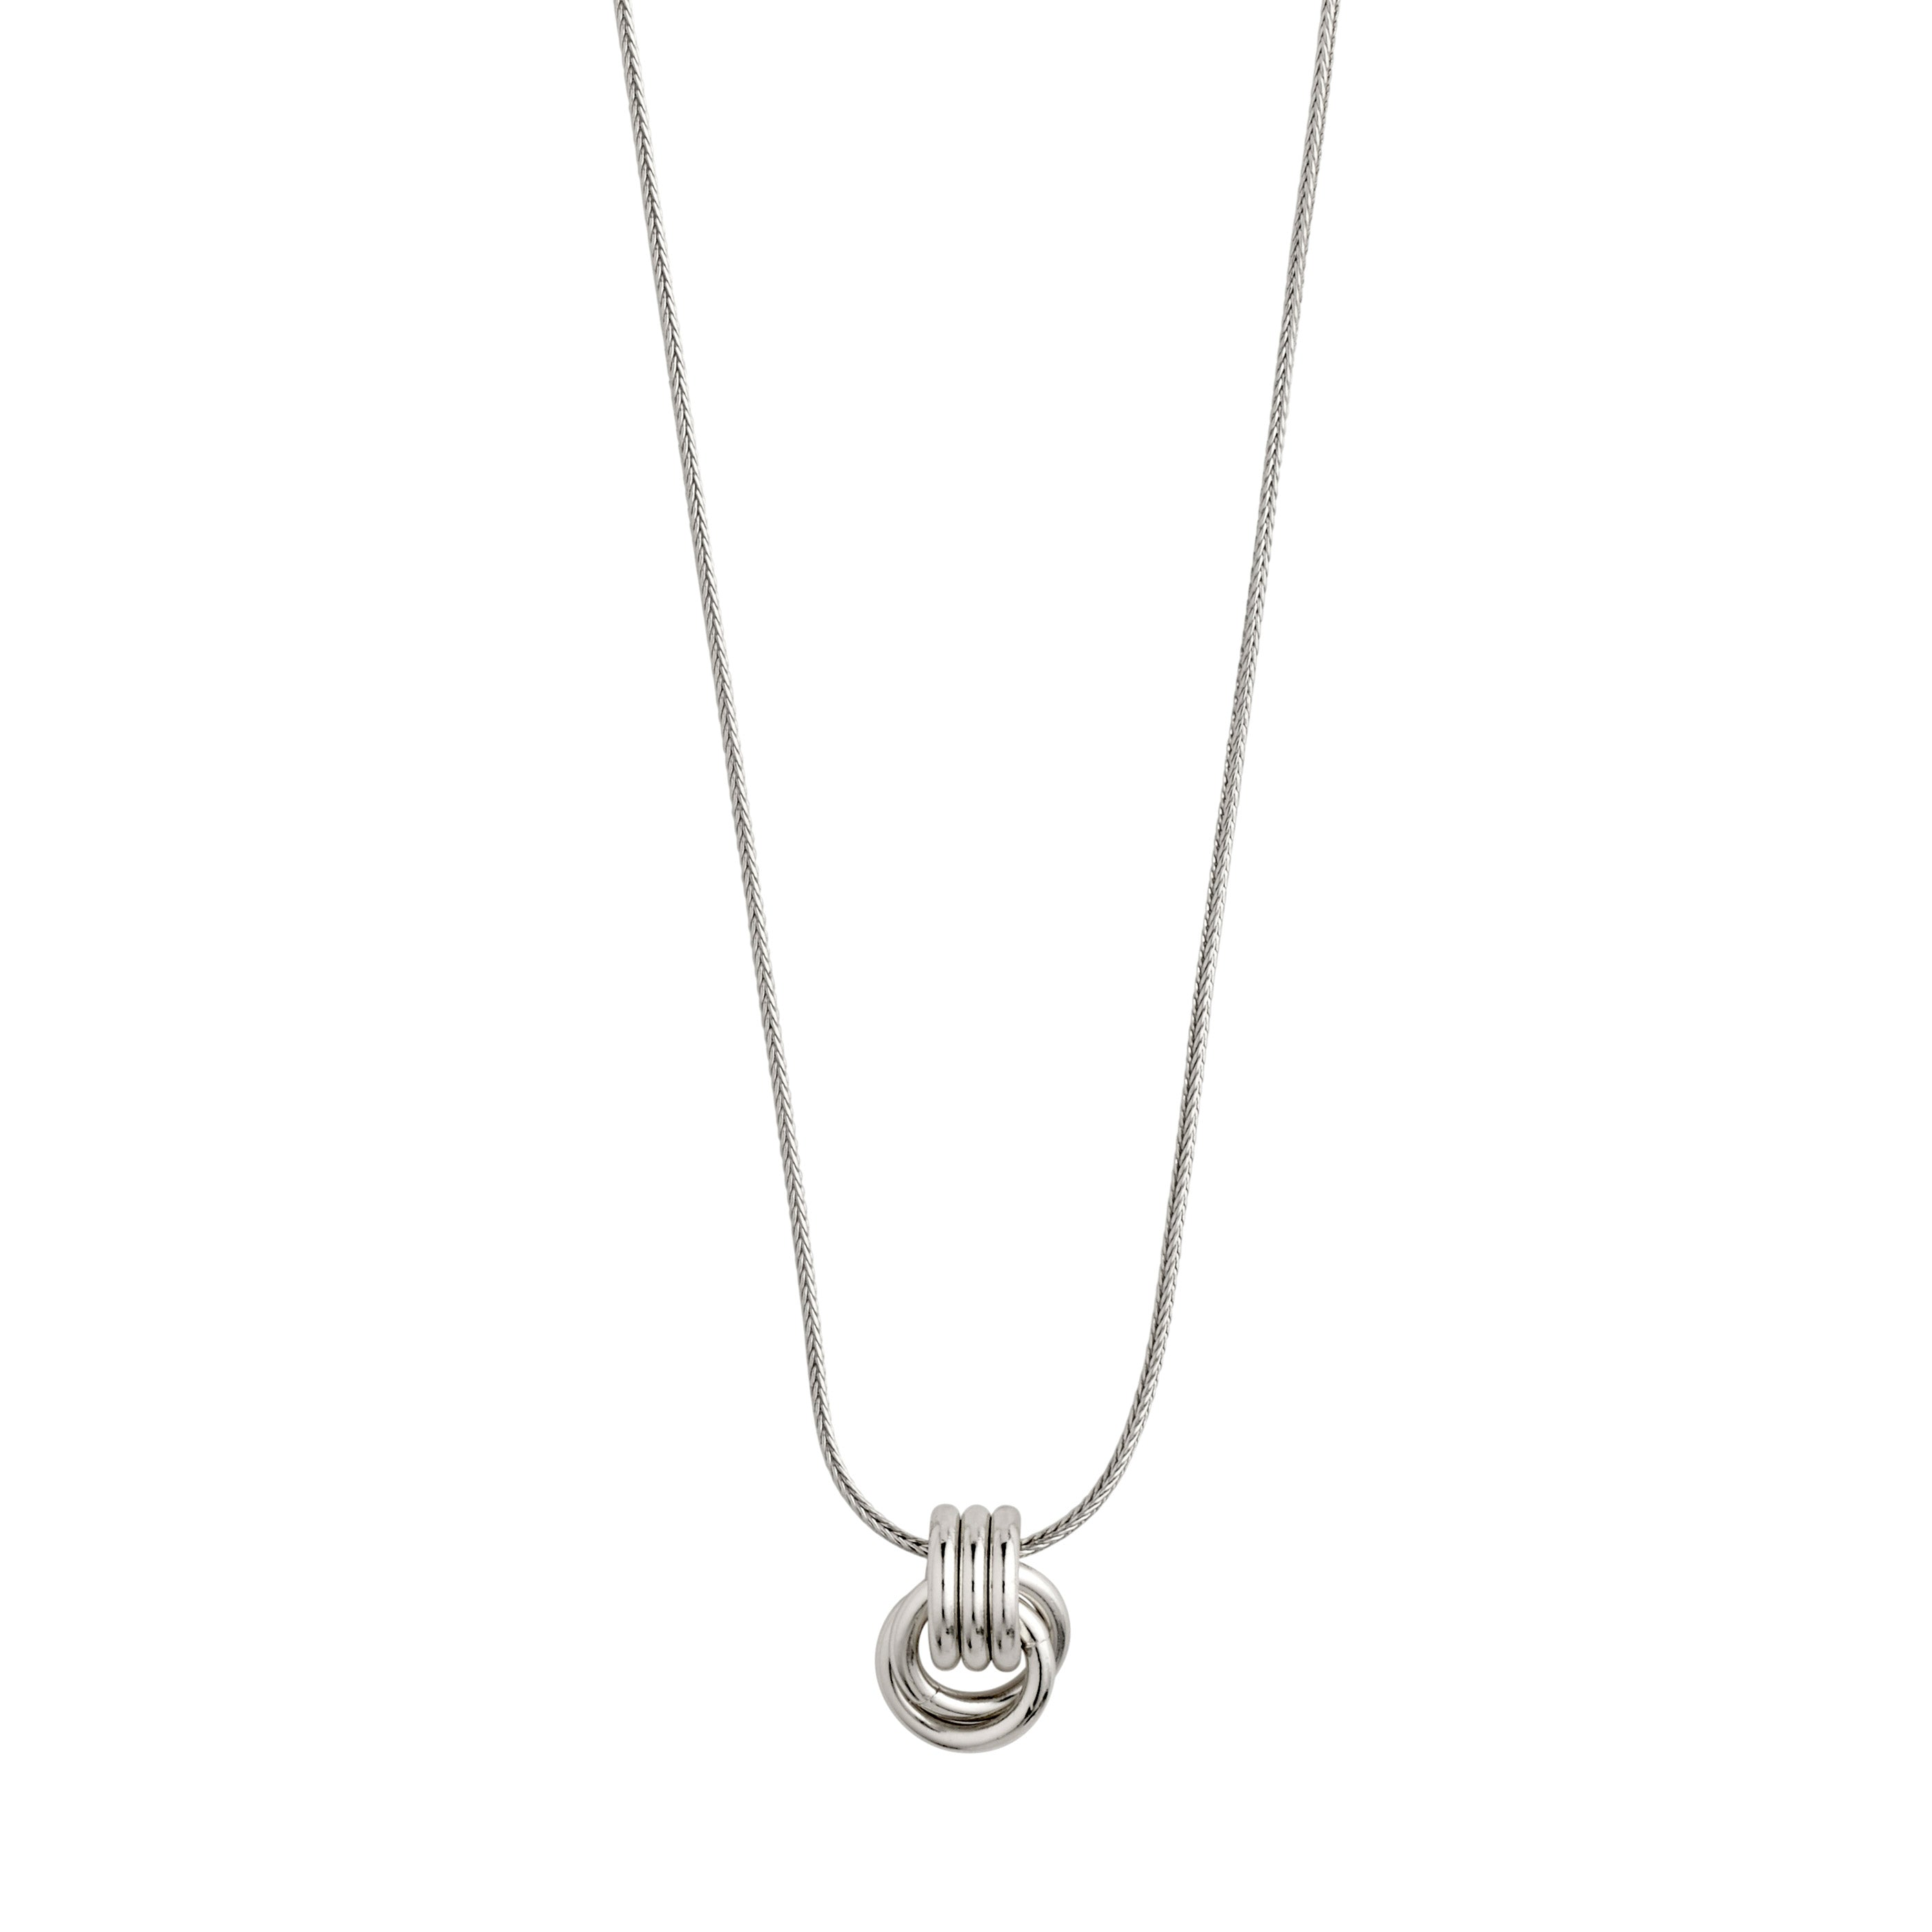 Necklace : Doris : Silver Plated